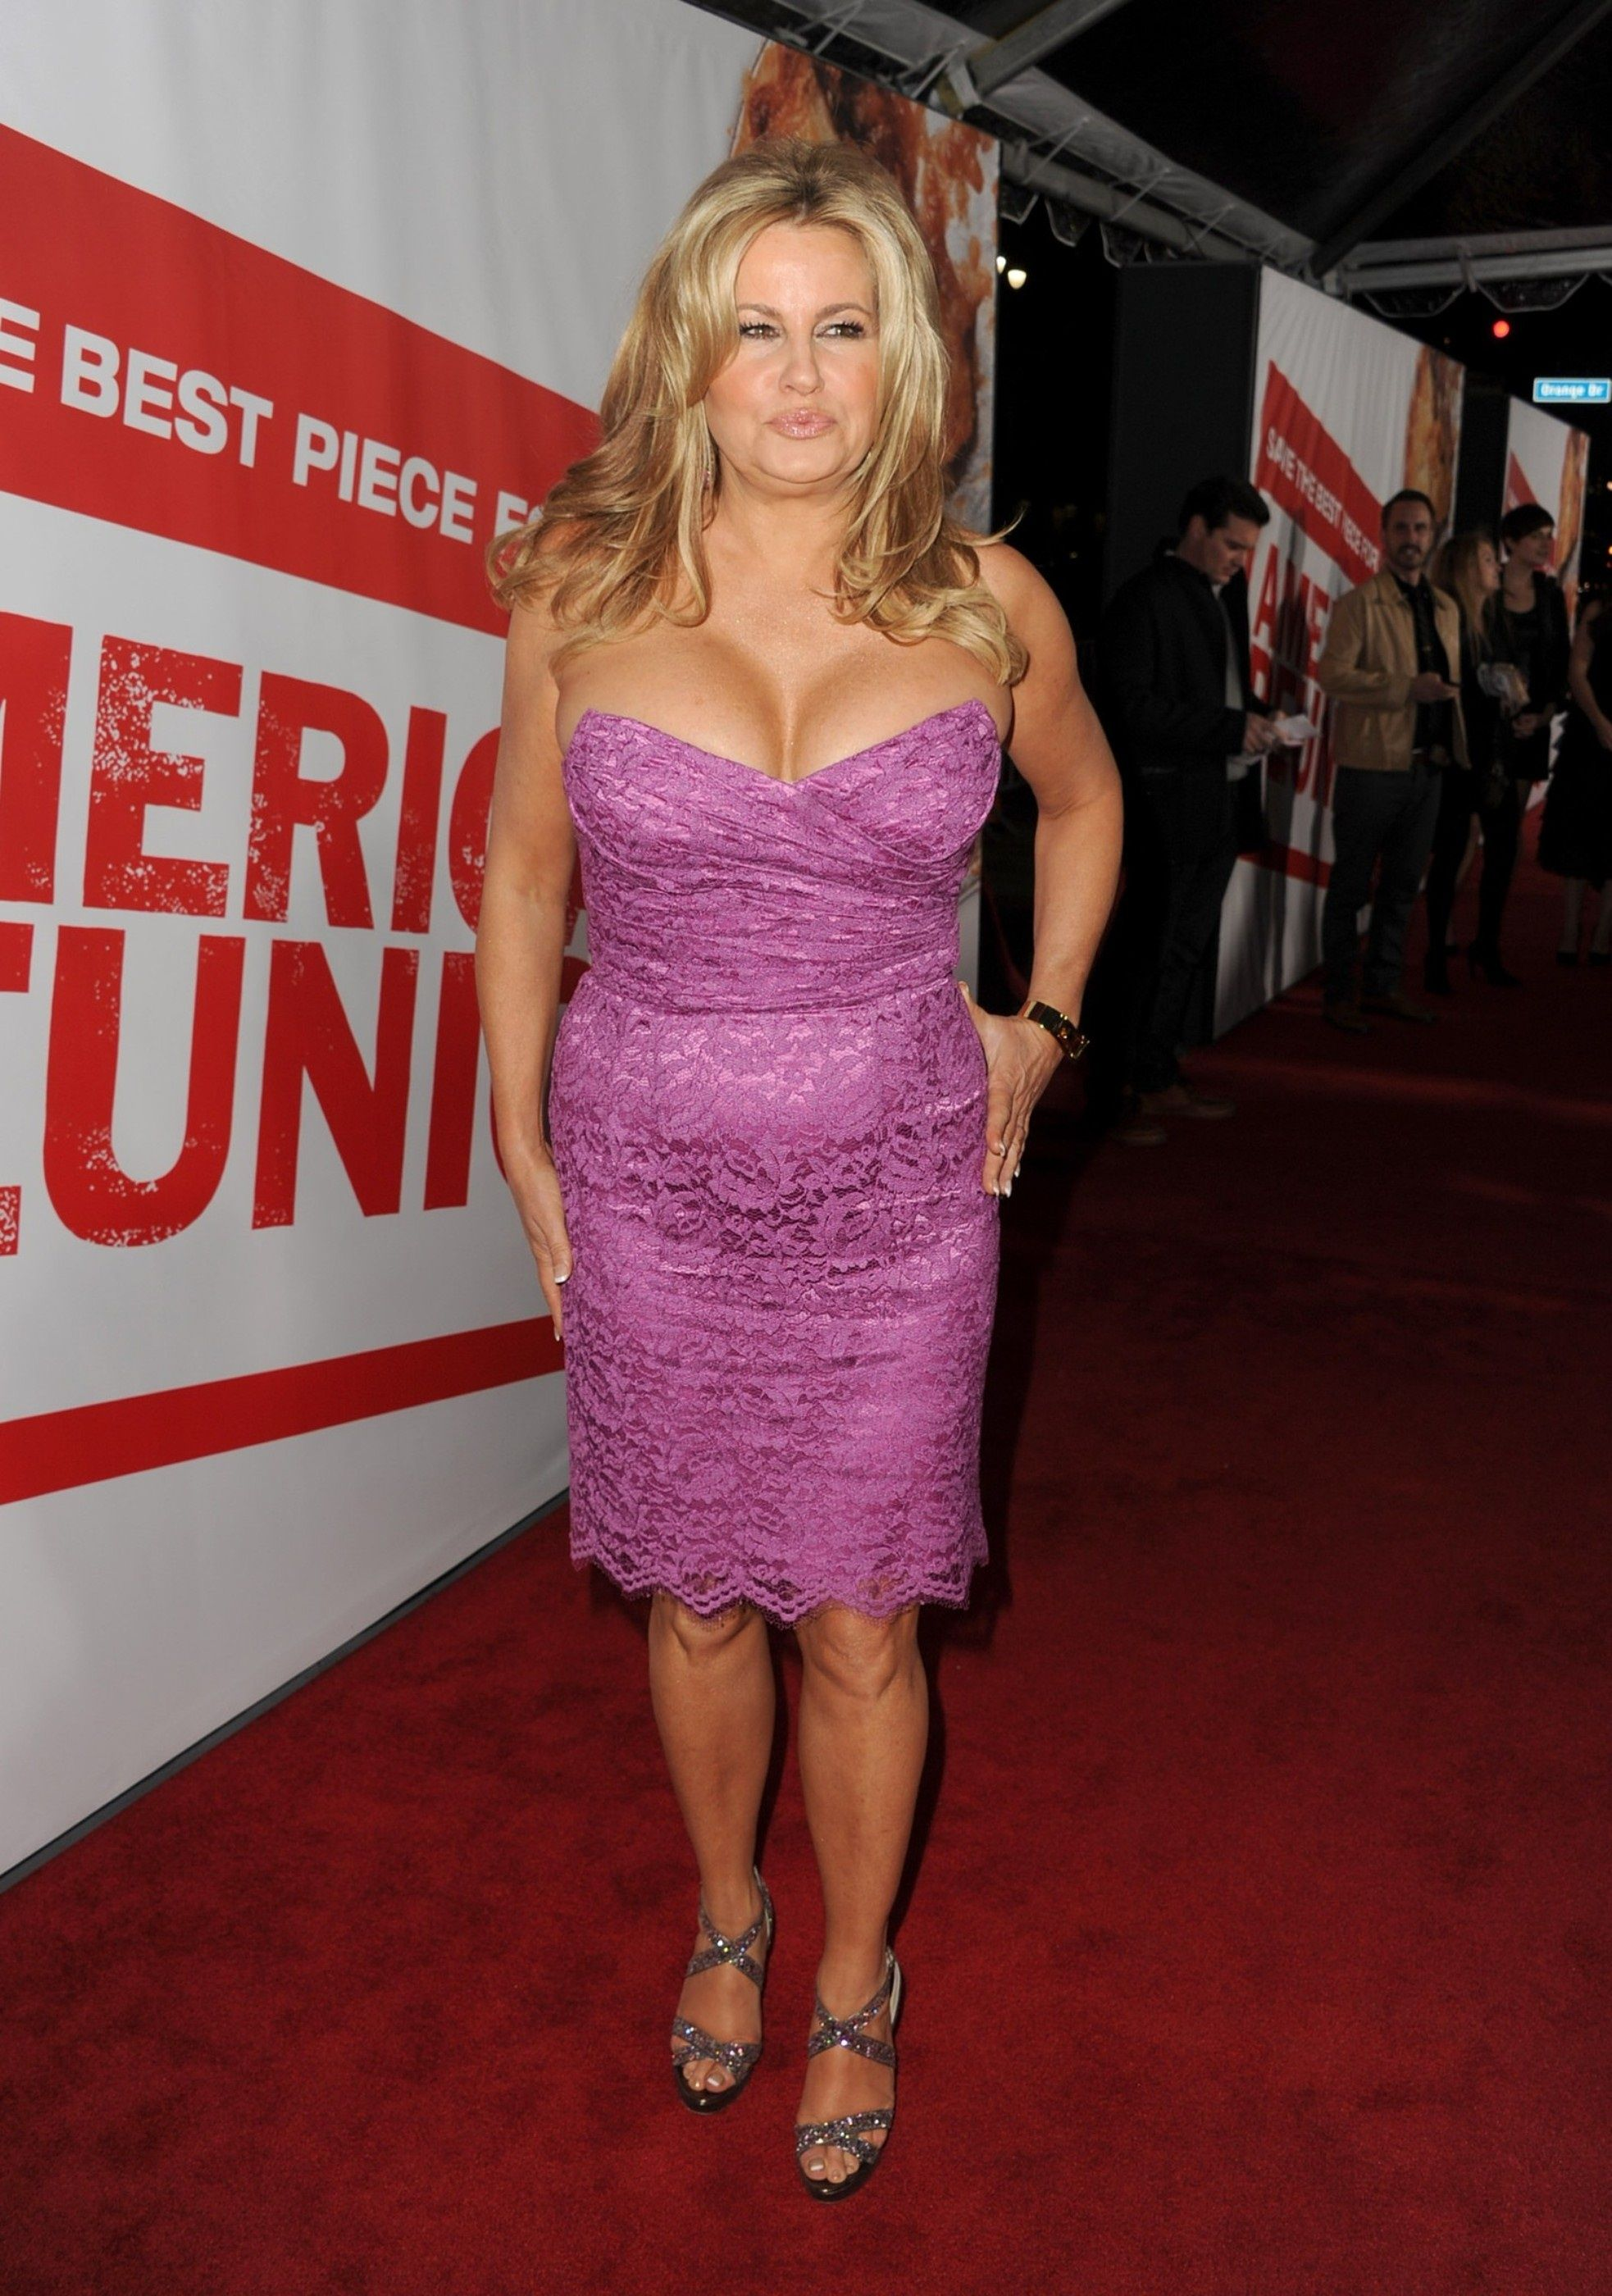 jennifer coolidge quotesjennifer coolidge 1999, jennifer coolidge friends, jennifer coolidge bio, jennifer coolidge quotes, jennifer coolidge biography, jennifer coolidge insta, jennifer coolidge instagram, jennifer coolidge husband, jennifer coolidge wiki, jennifer coolidge stand up, jennifer coolidge films, jennifer coolidge interview, jennifer coolidge partner